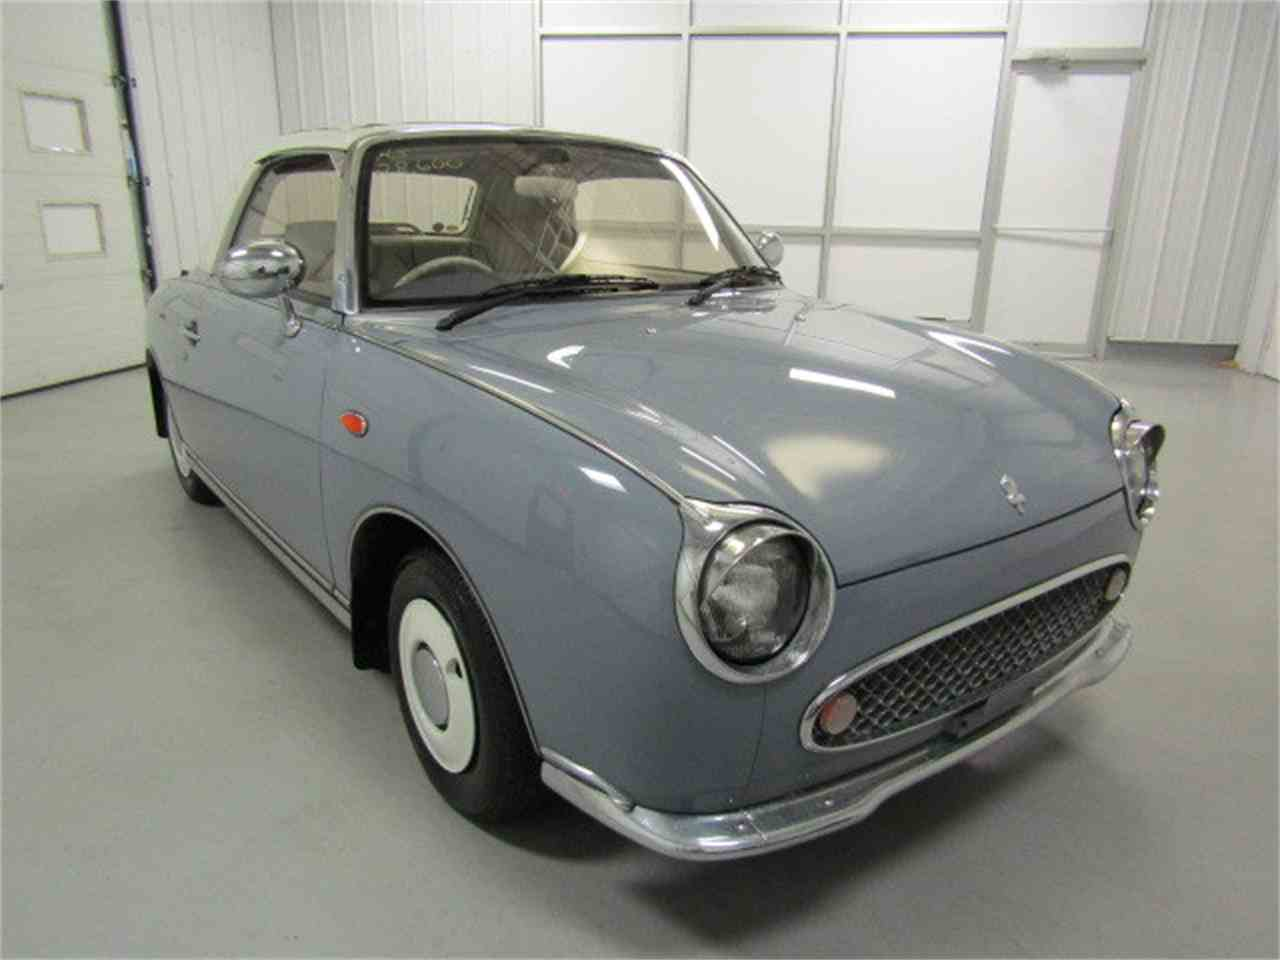 1991 Nissan Figaro for Sale - CC-1003201